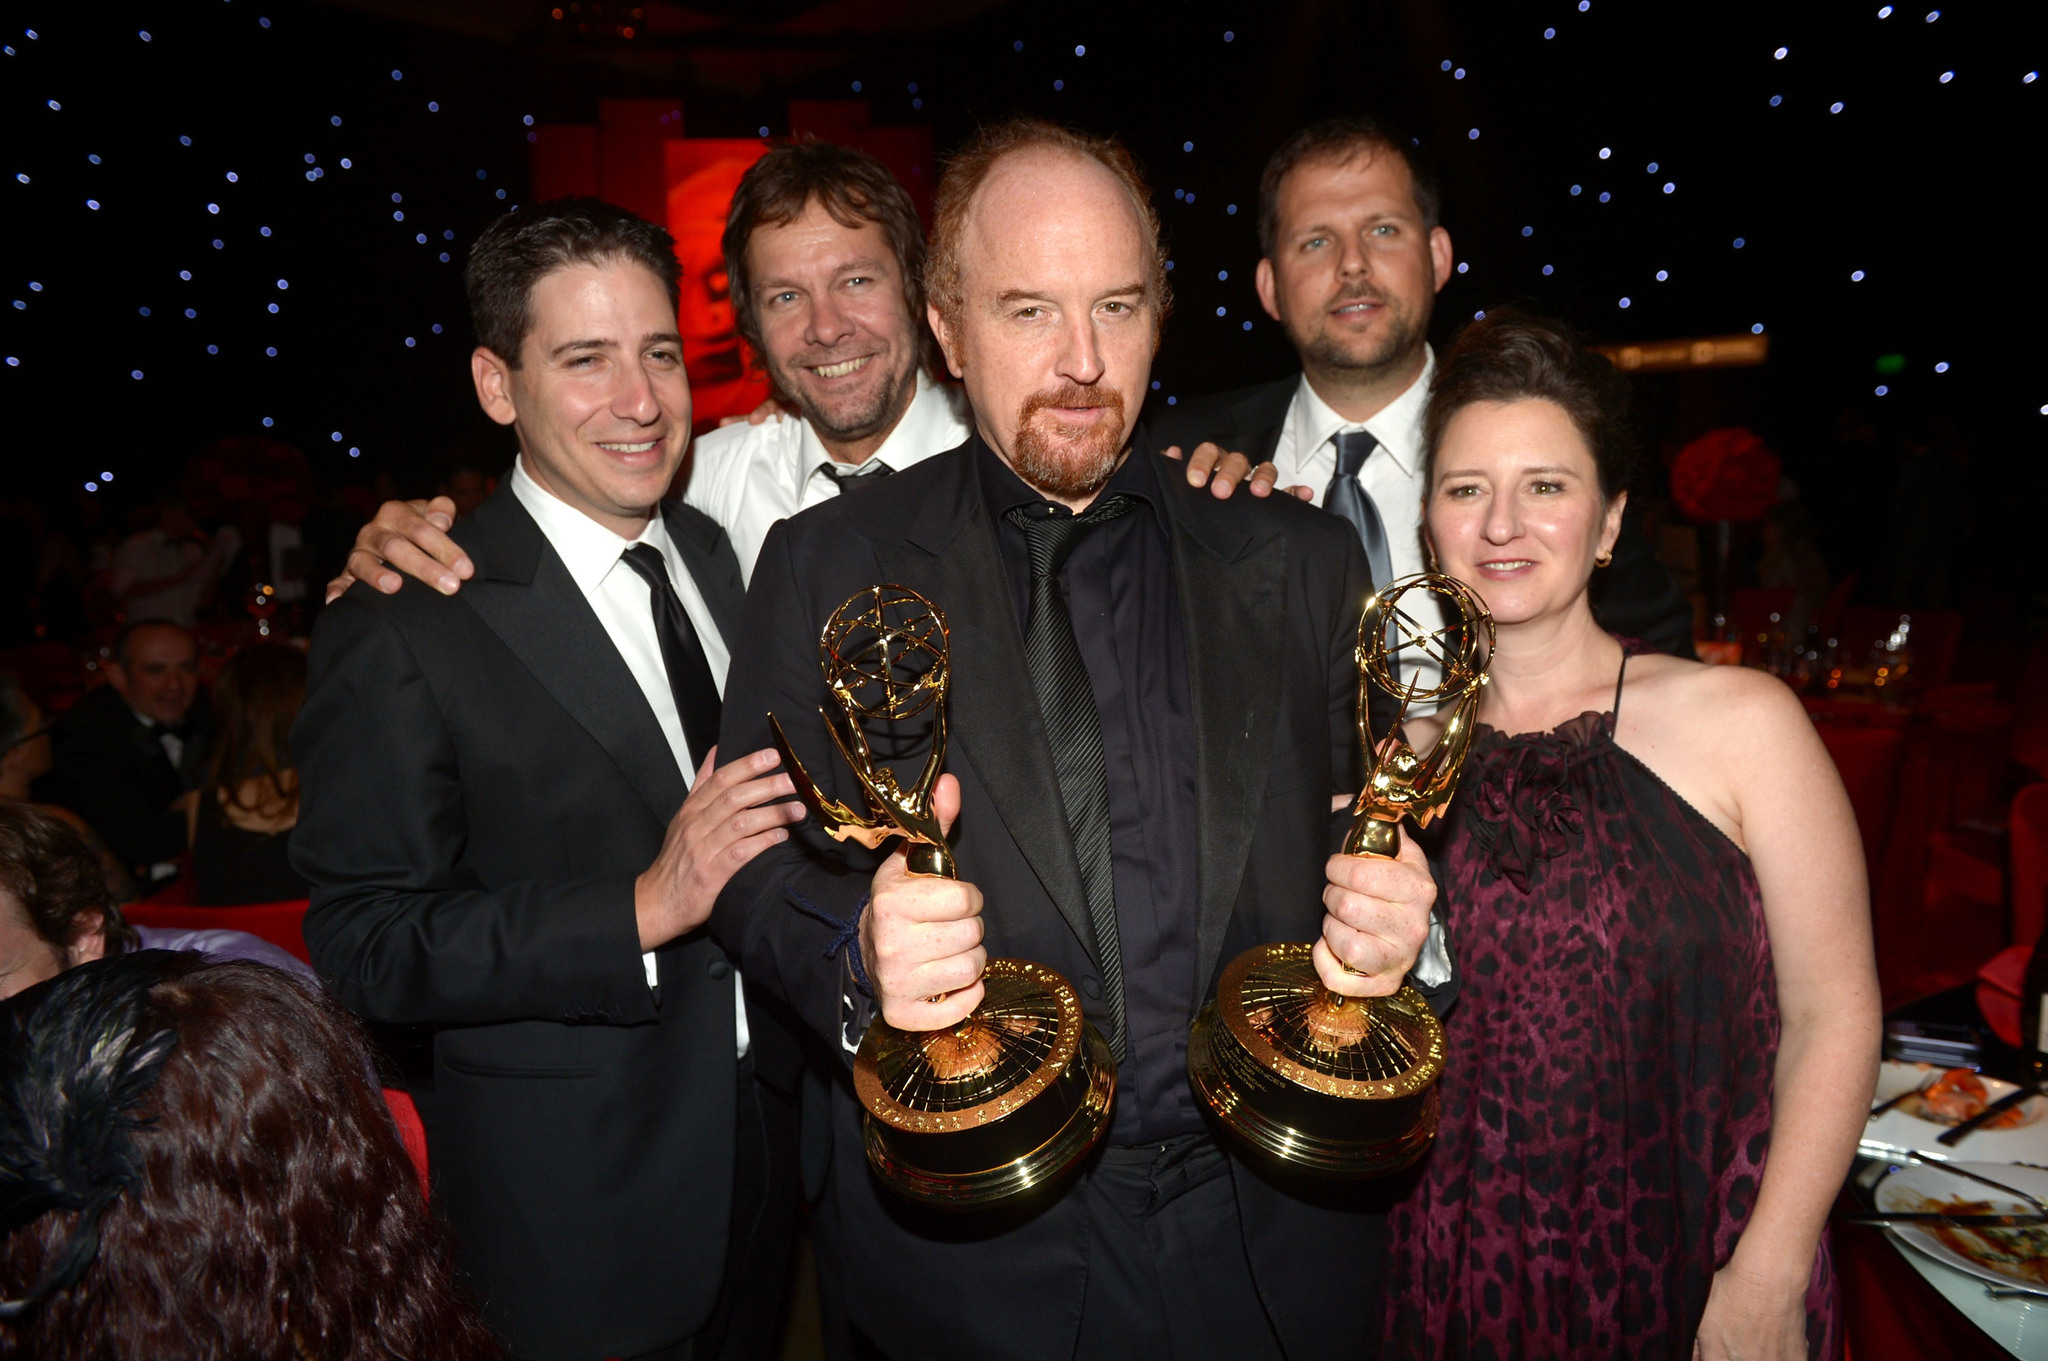 Dave Becky, Blair Breard, Louis C.K. and Nick Grad at event of The 64th Primetime Emmy Awards (2012)